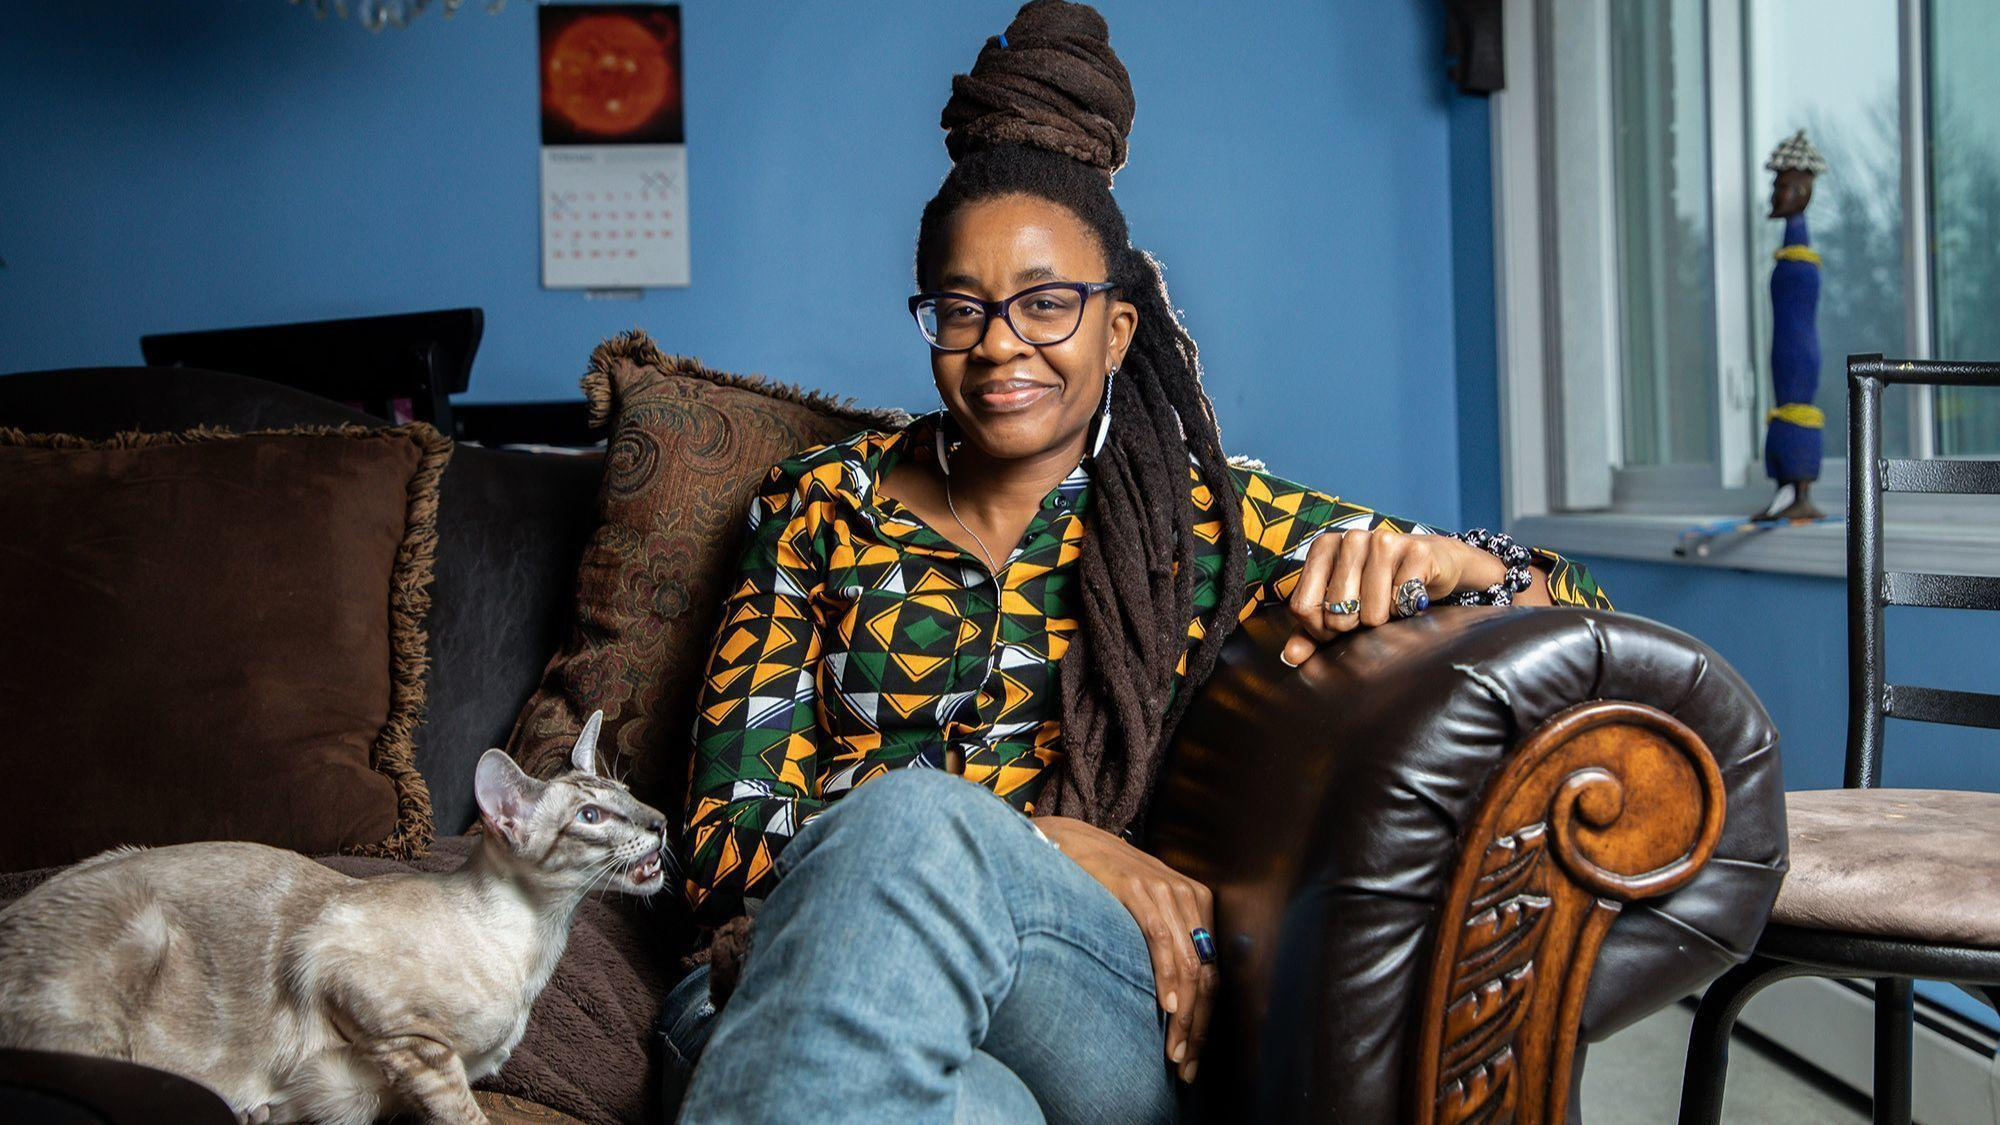 How Nnedi Okorafor is building the future of sci-fi from Flossmoor. (Being George R.R. Martin's protege doesn't hurt.)